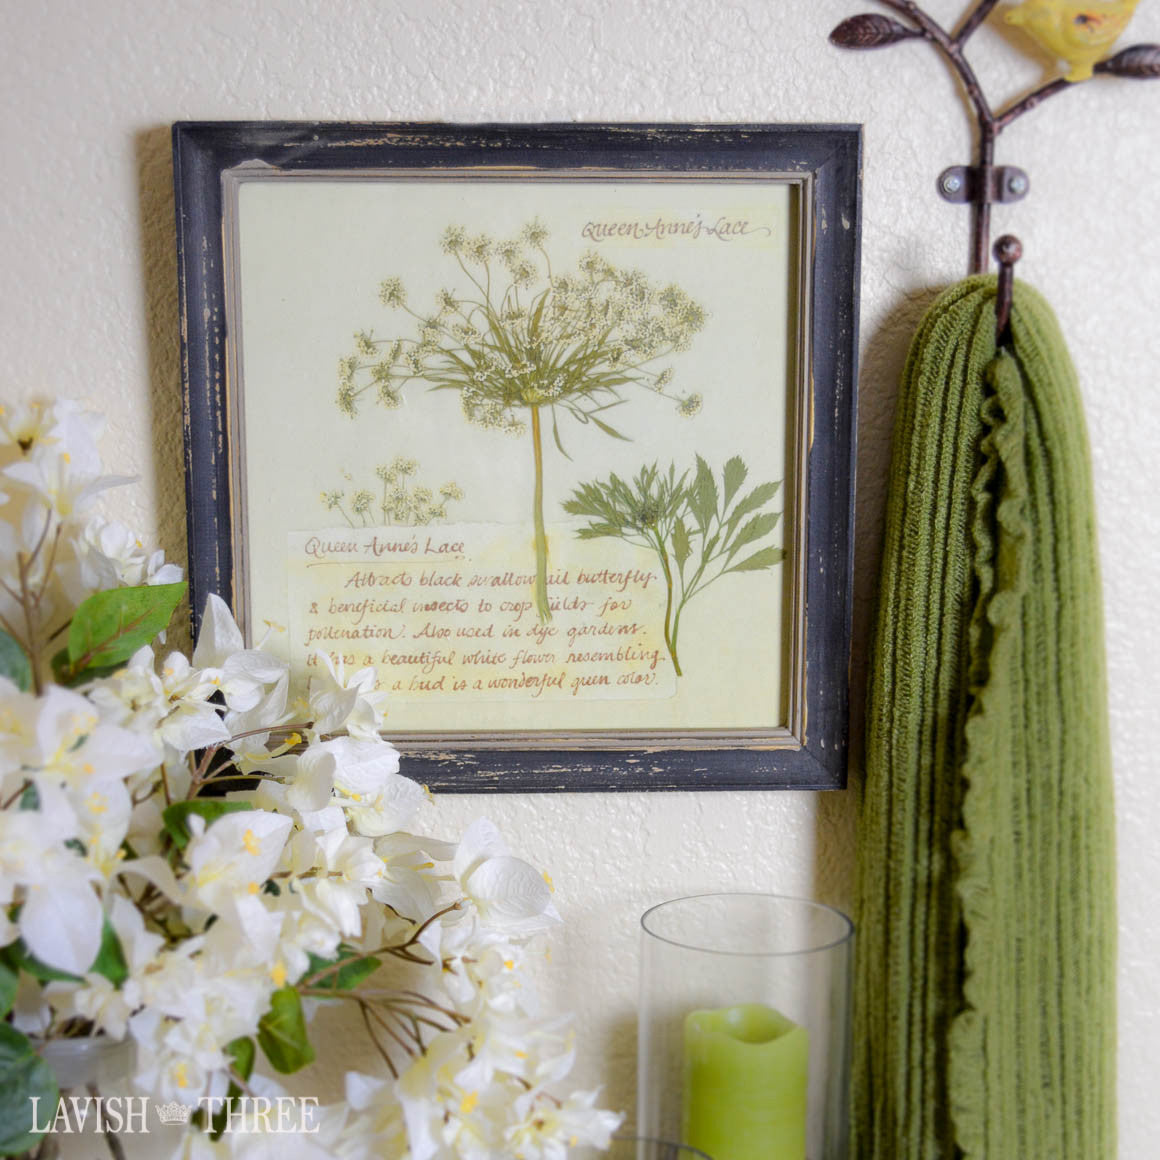 Queen Anne's lace print vintage wall art decor in cottage chic wood frame